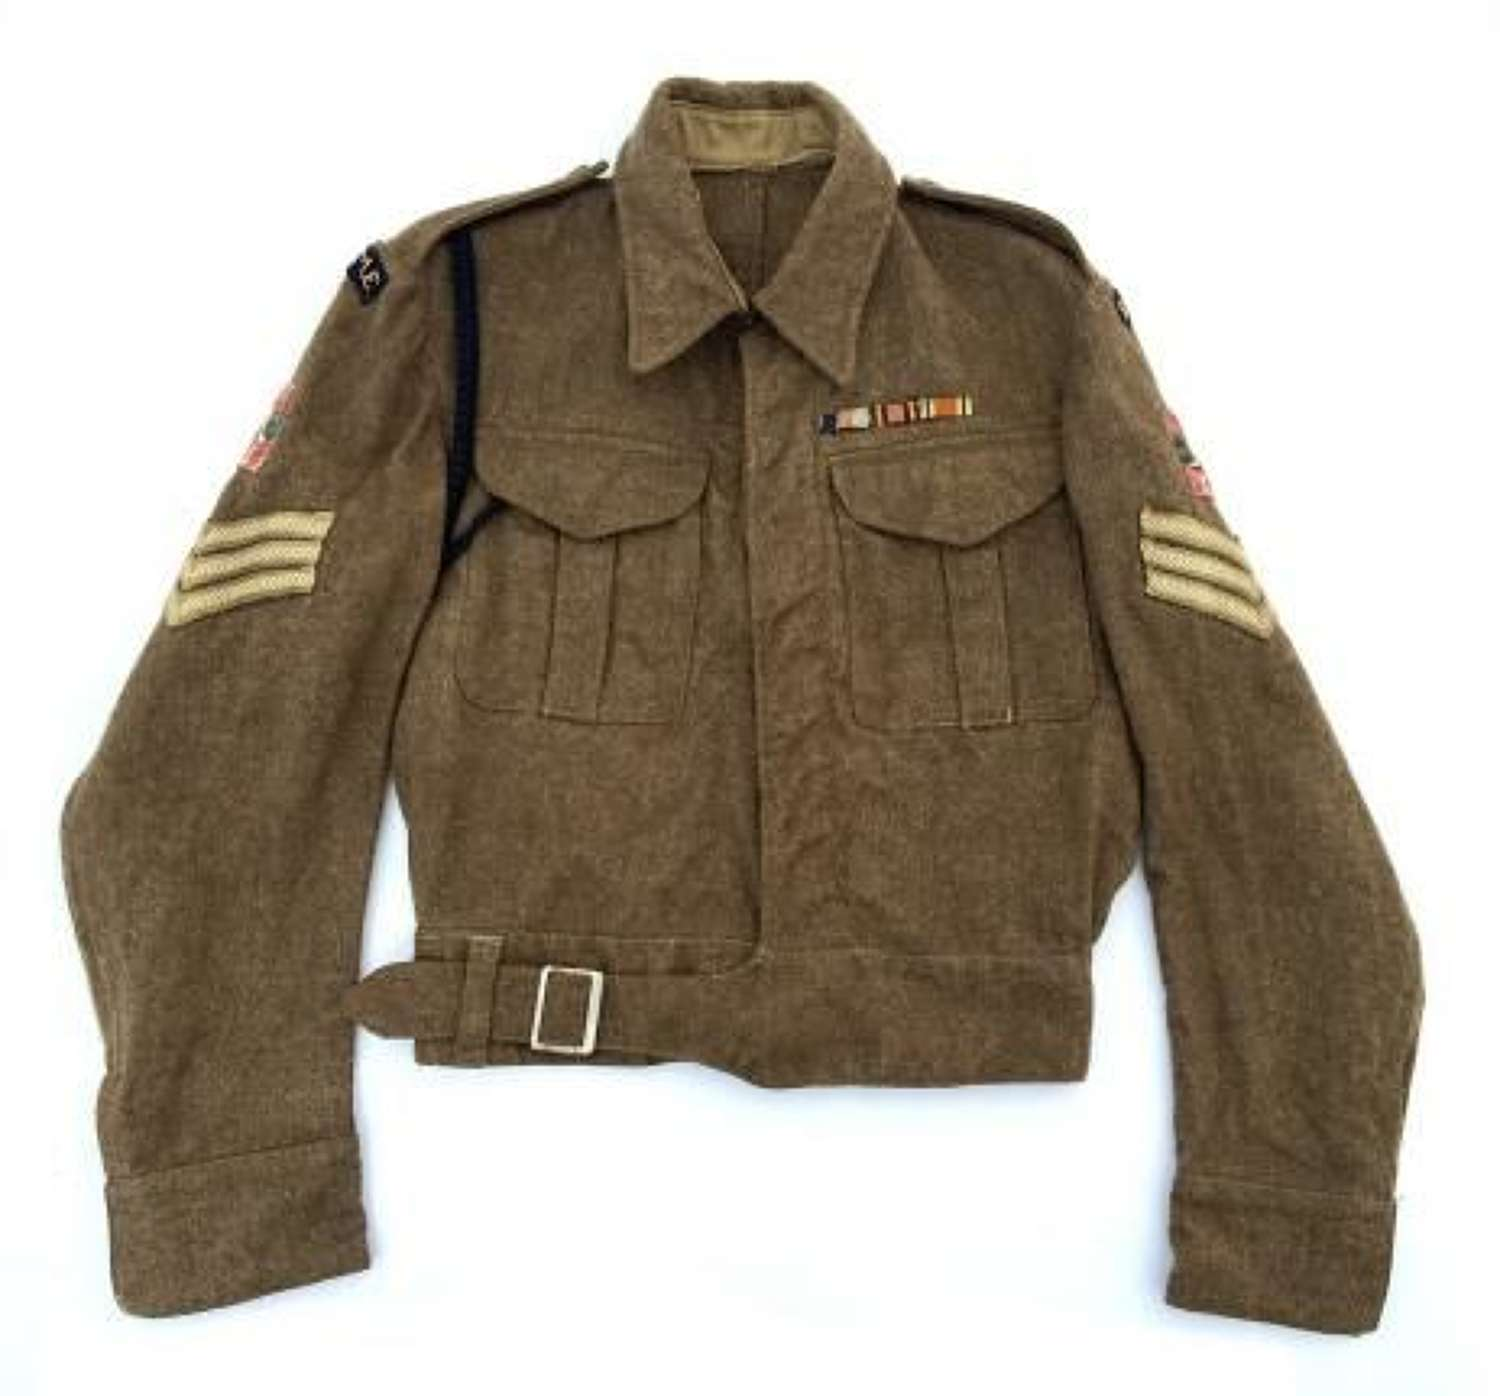 Original 1941 Dated British Army Battledress Blouse with REME 12th Arm